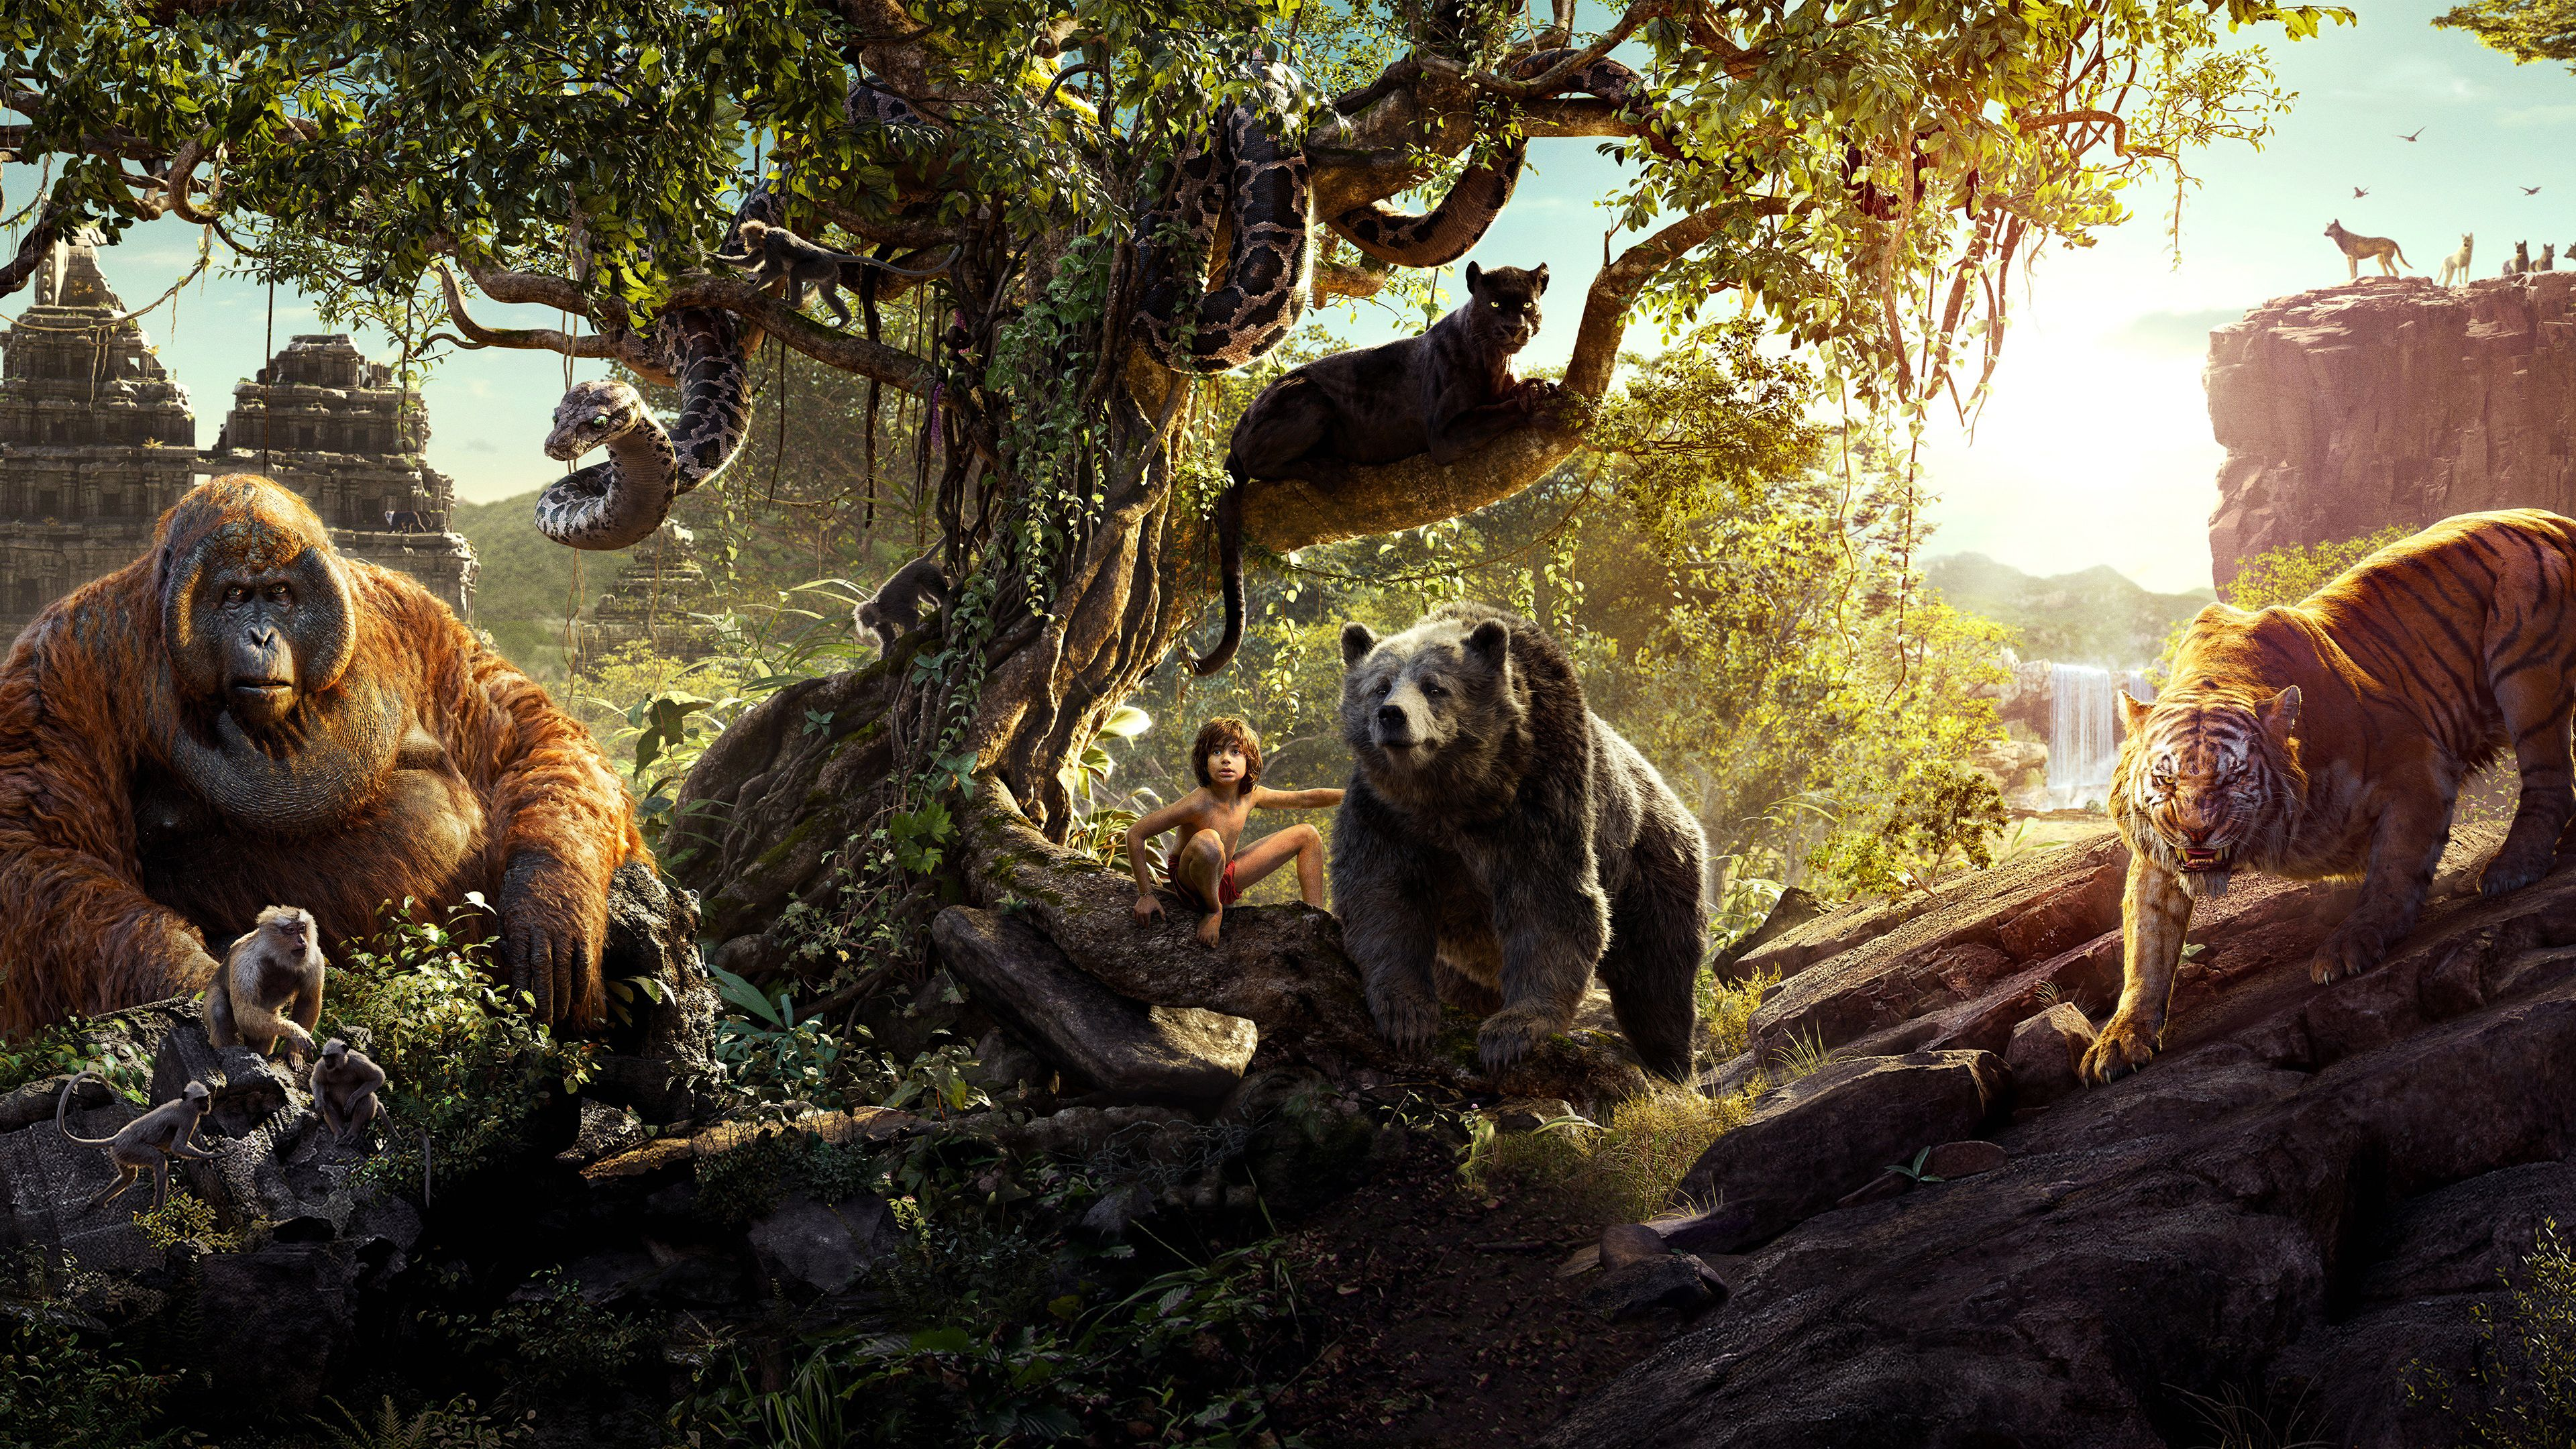 4k The Jungle Book 2016 Wallpaper By Nicolaslfbv Uhd Wallpapers